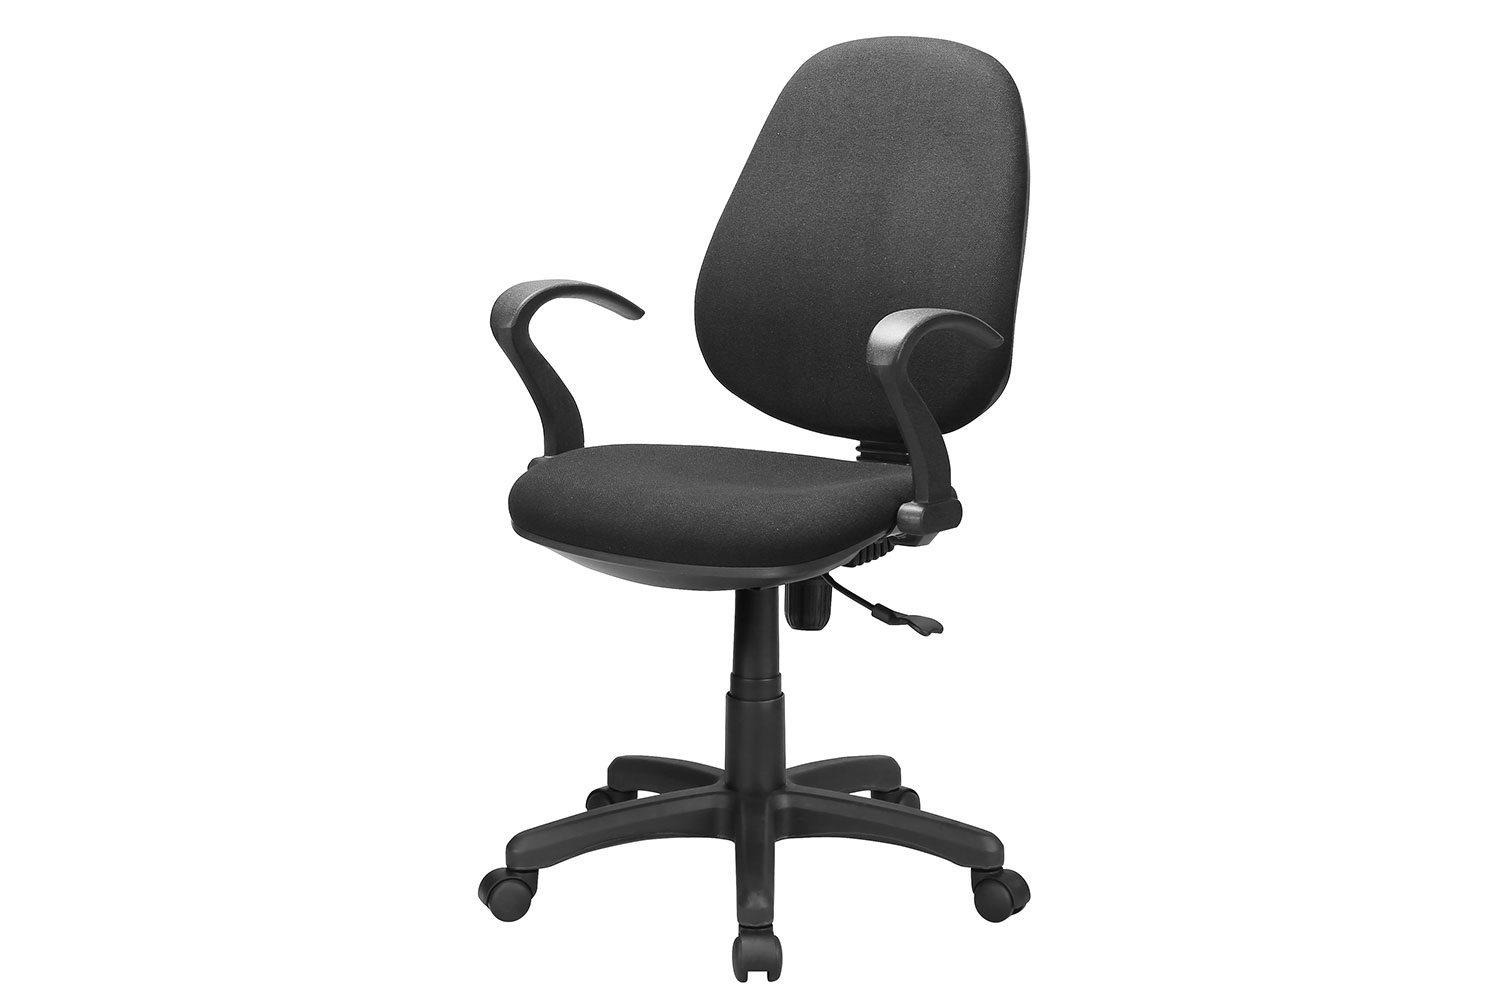 ergonomic chair harvey norman jack daniels whiskey barrel table and chairs ozzy office new zealand